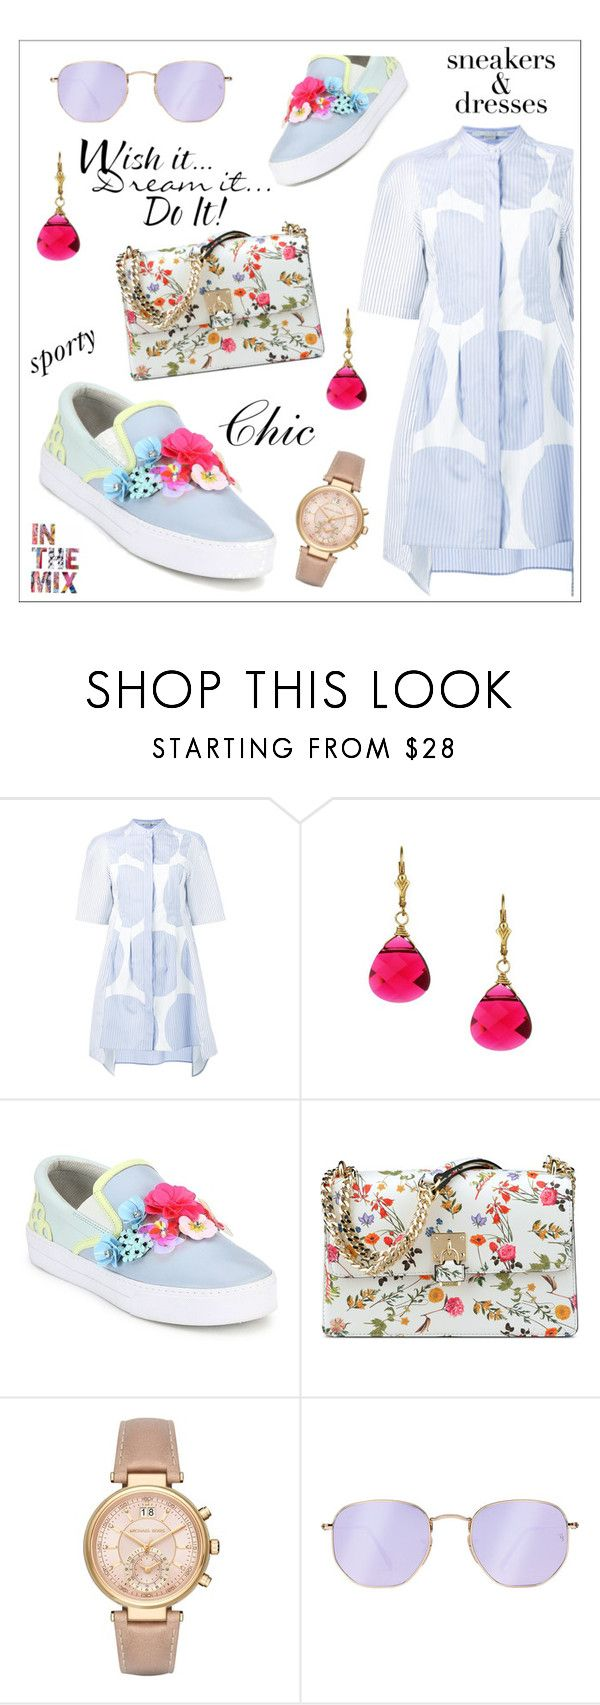 """""""Sporty Chic"""" by li-lac7 ❤ liked on Polyvore featuring STELLA McCARTNEY, Charming Life, Sophia Webster, Nine West, Michael Kors, Ray-Ban and WALL"""